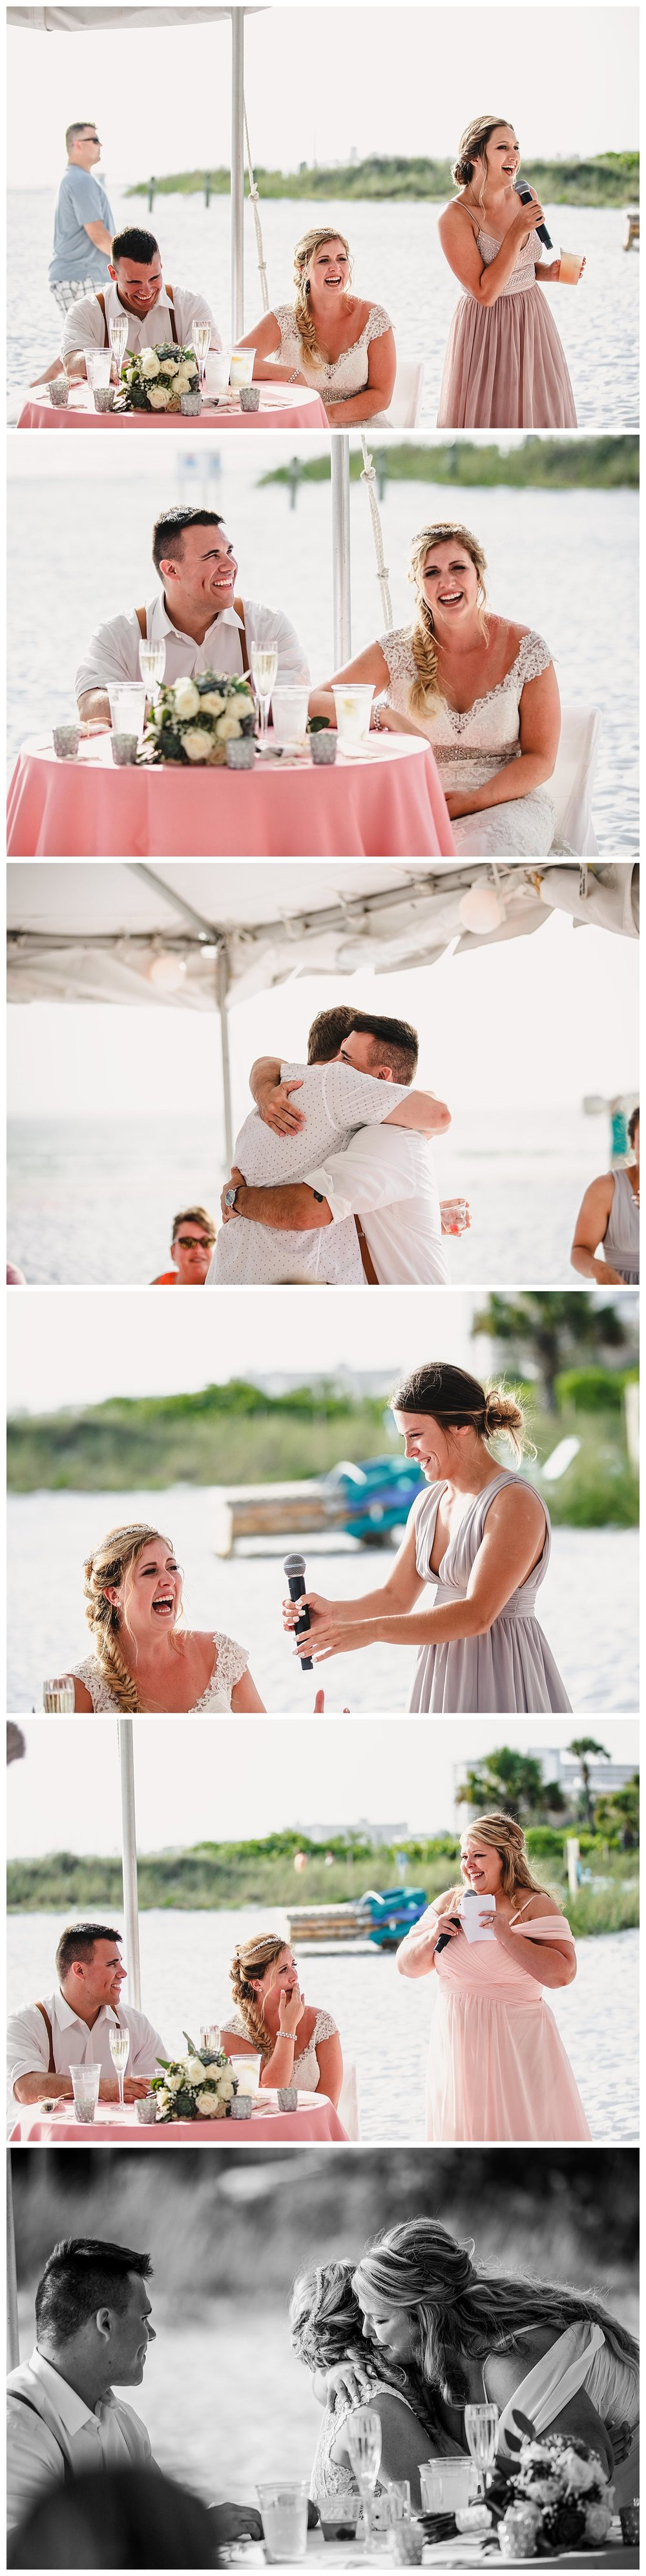 Kelsey_Diane_Photography_Destination_Wedding_Sarasota_Florida_Beach_Wedding_Alex_Austin_0665.jpg